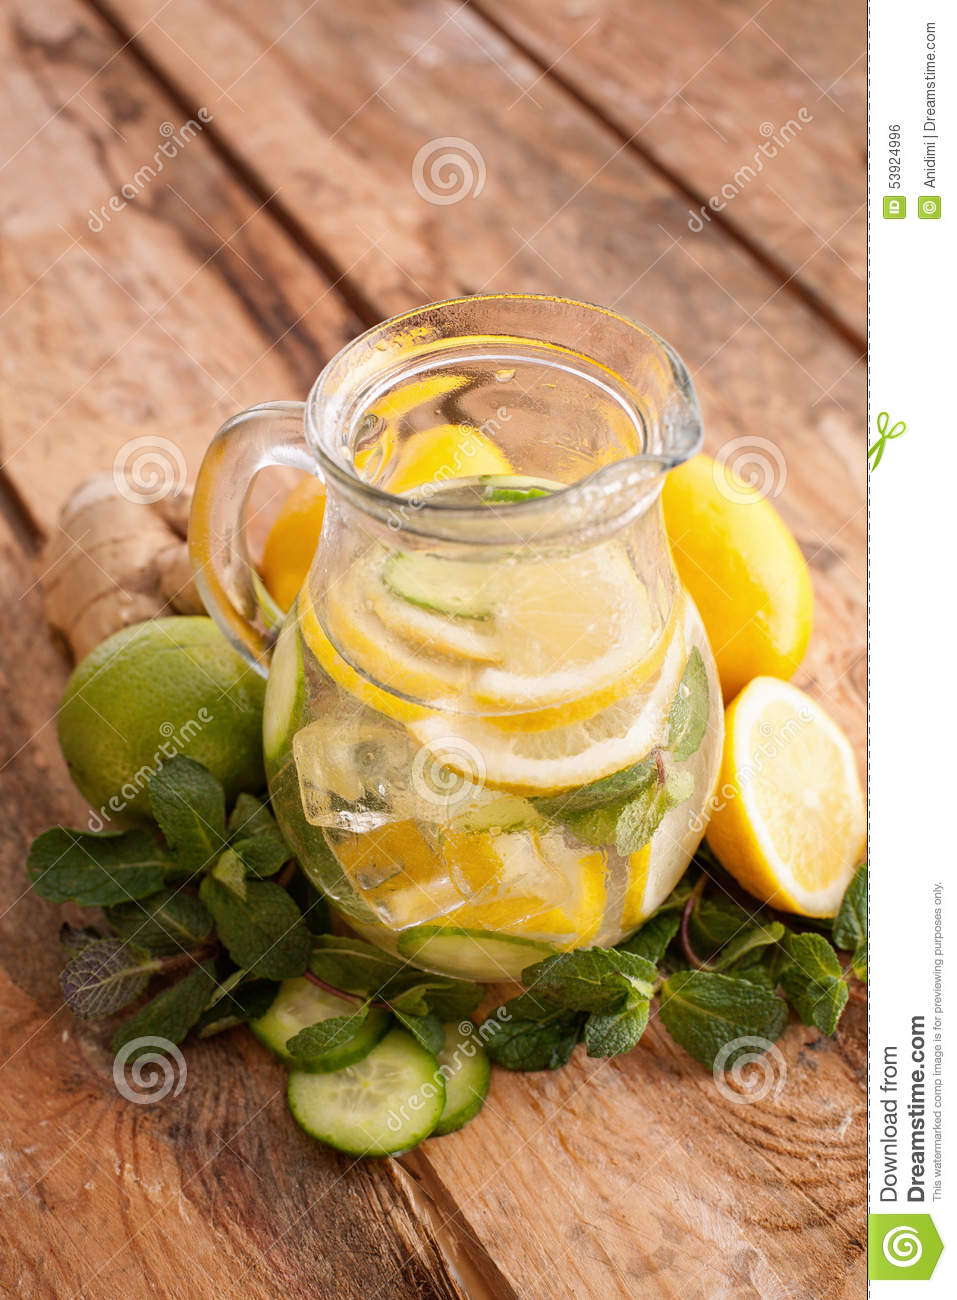 Facts: Lemon in acid and caffeine drink To enjoy ur drinks with too much caffeine and acid, U can add drops of Lemon juice. Ur drink's gonna be caffeine and acid free.